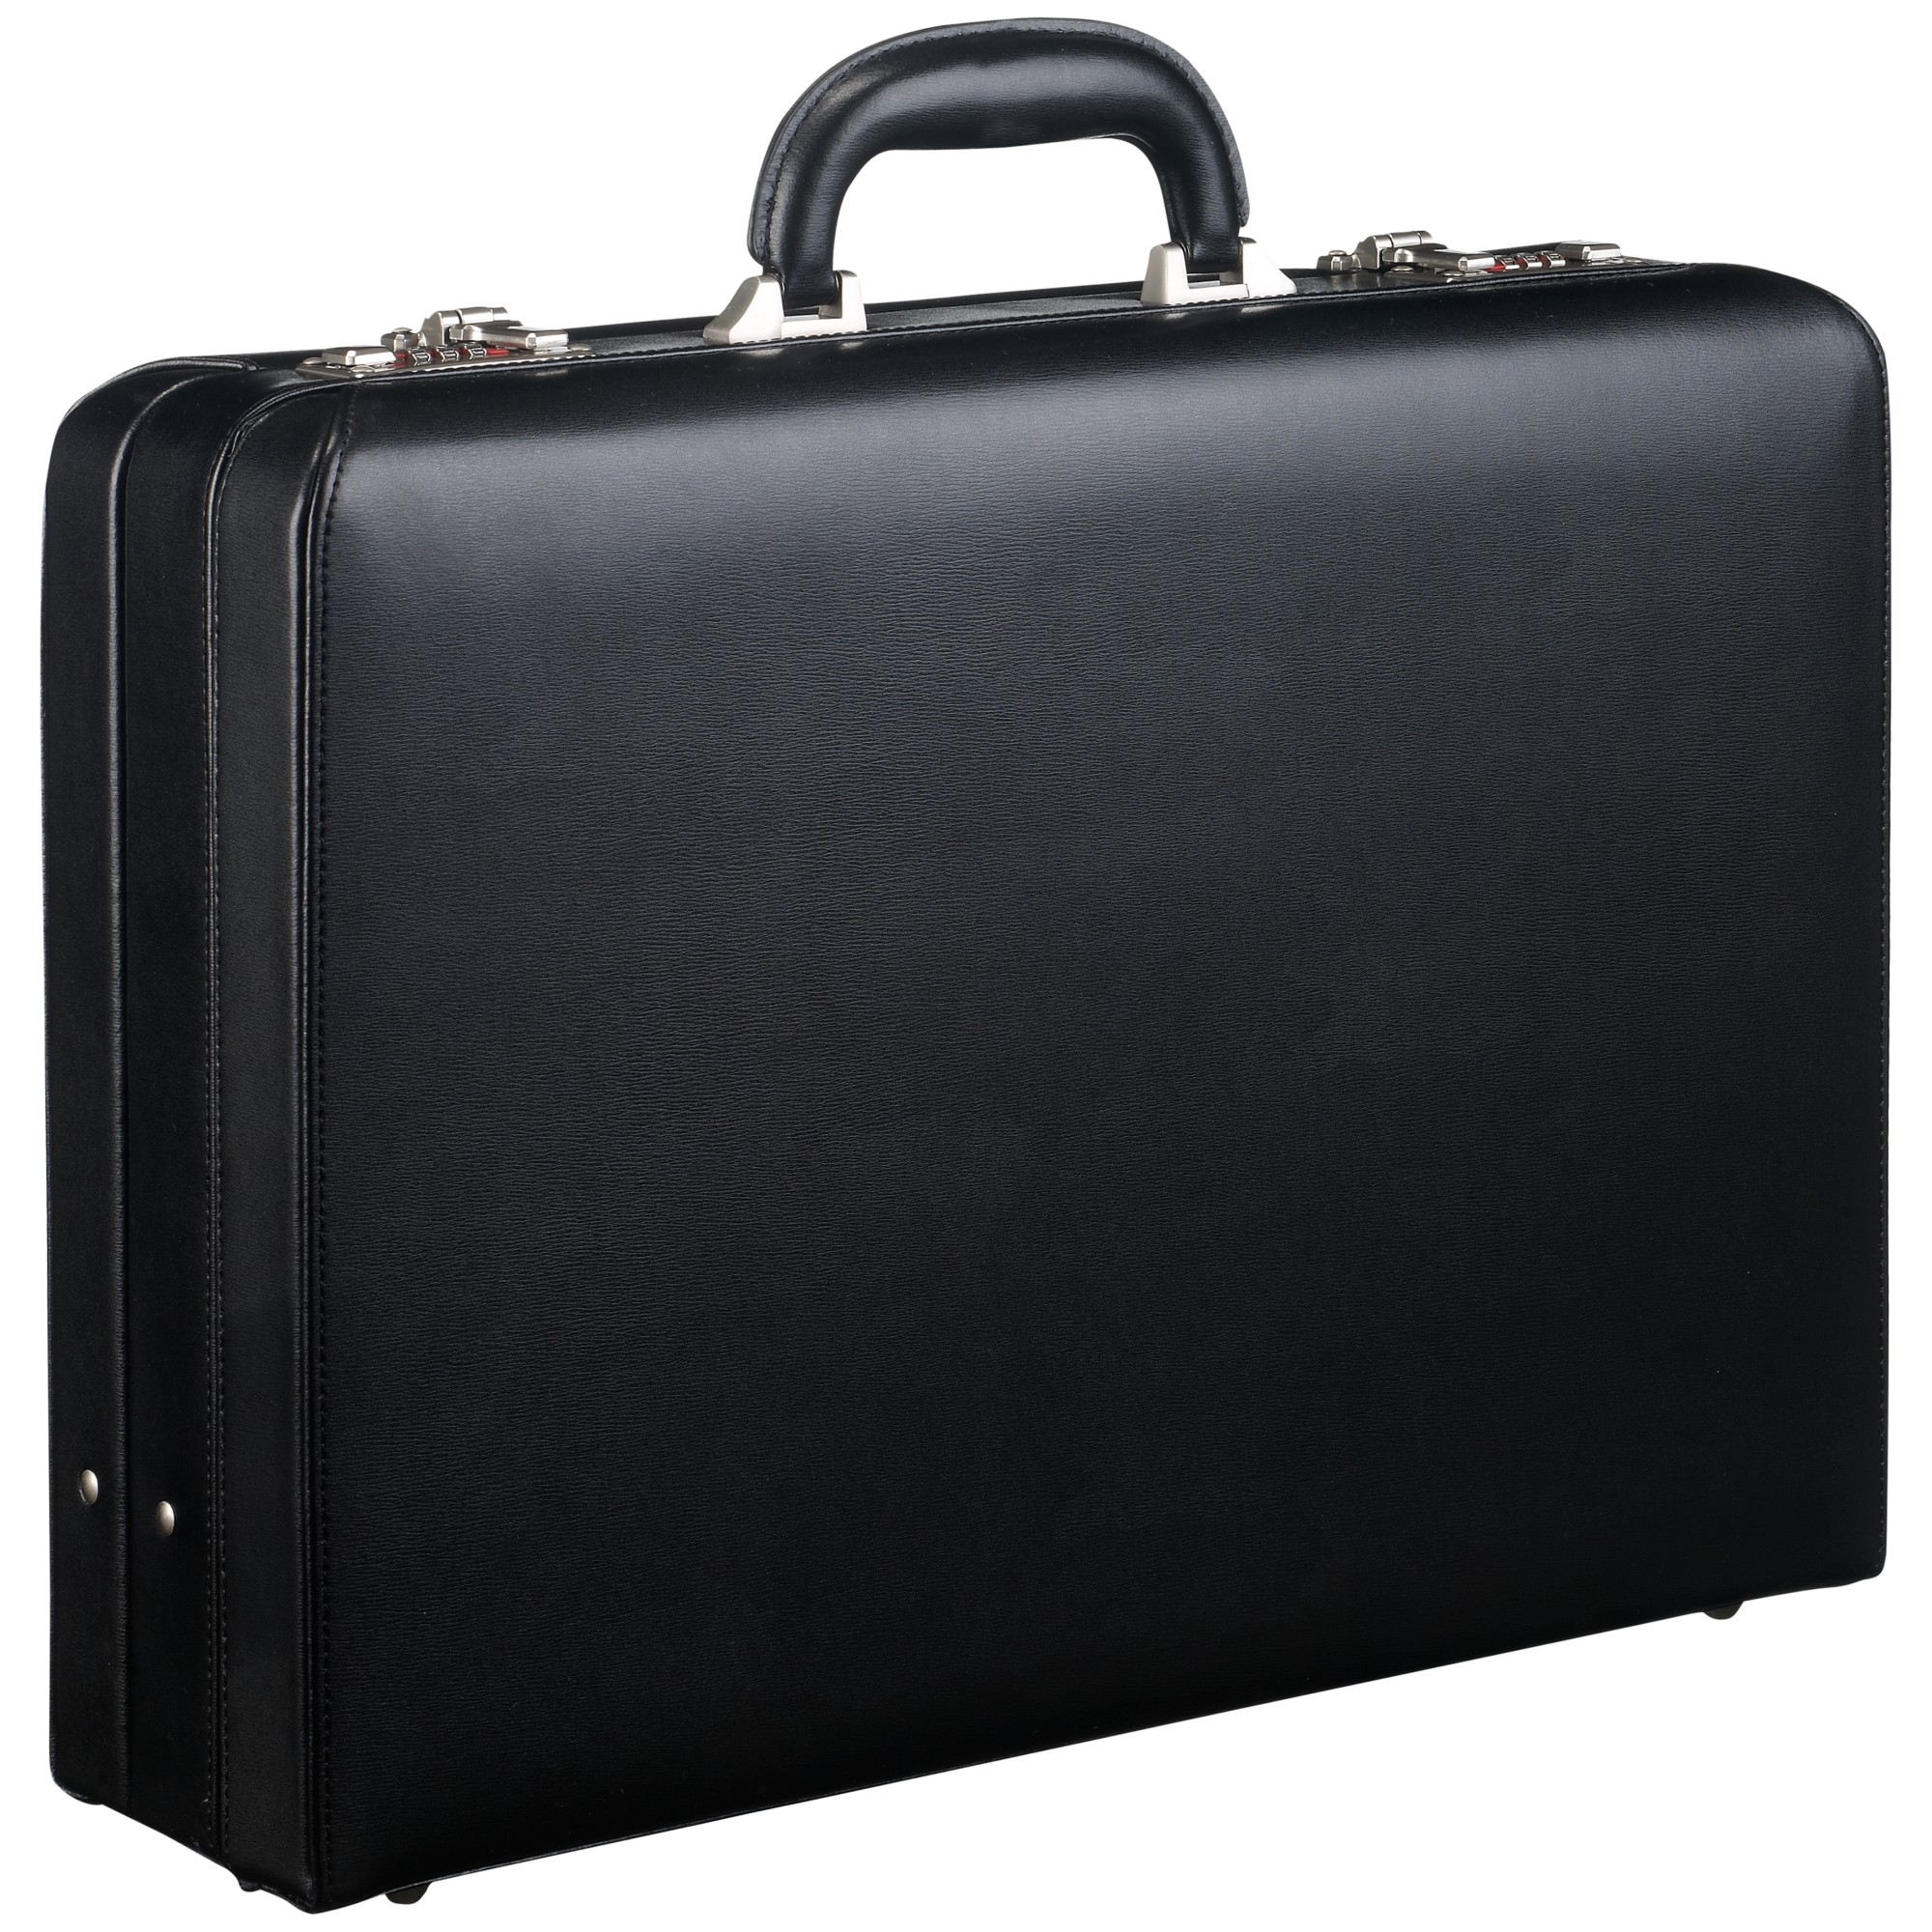 John Lewis Chicago Attache Leather Briefcase In Black For